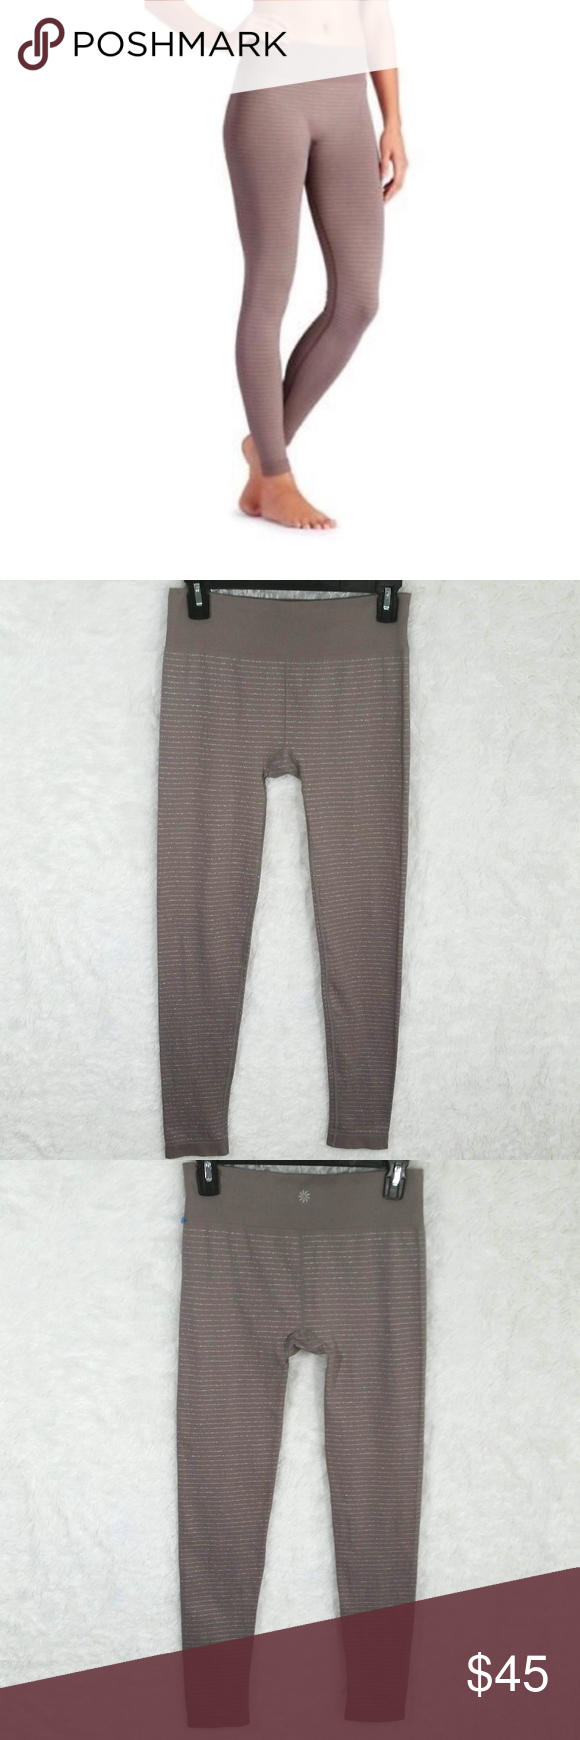 d0fb5b131bb18 Athleta Shimmer Striped Seamless Tights Fox Taupe Hi Guys! I'm Selling  these super